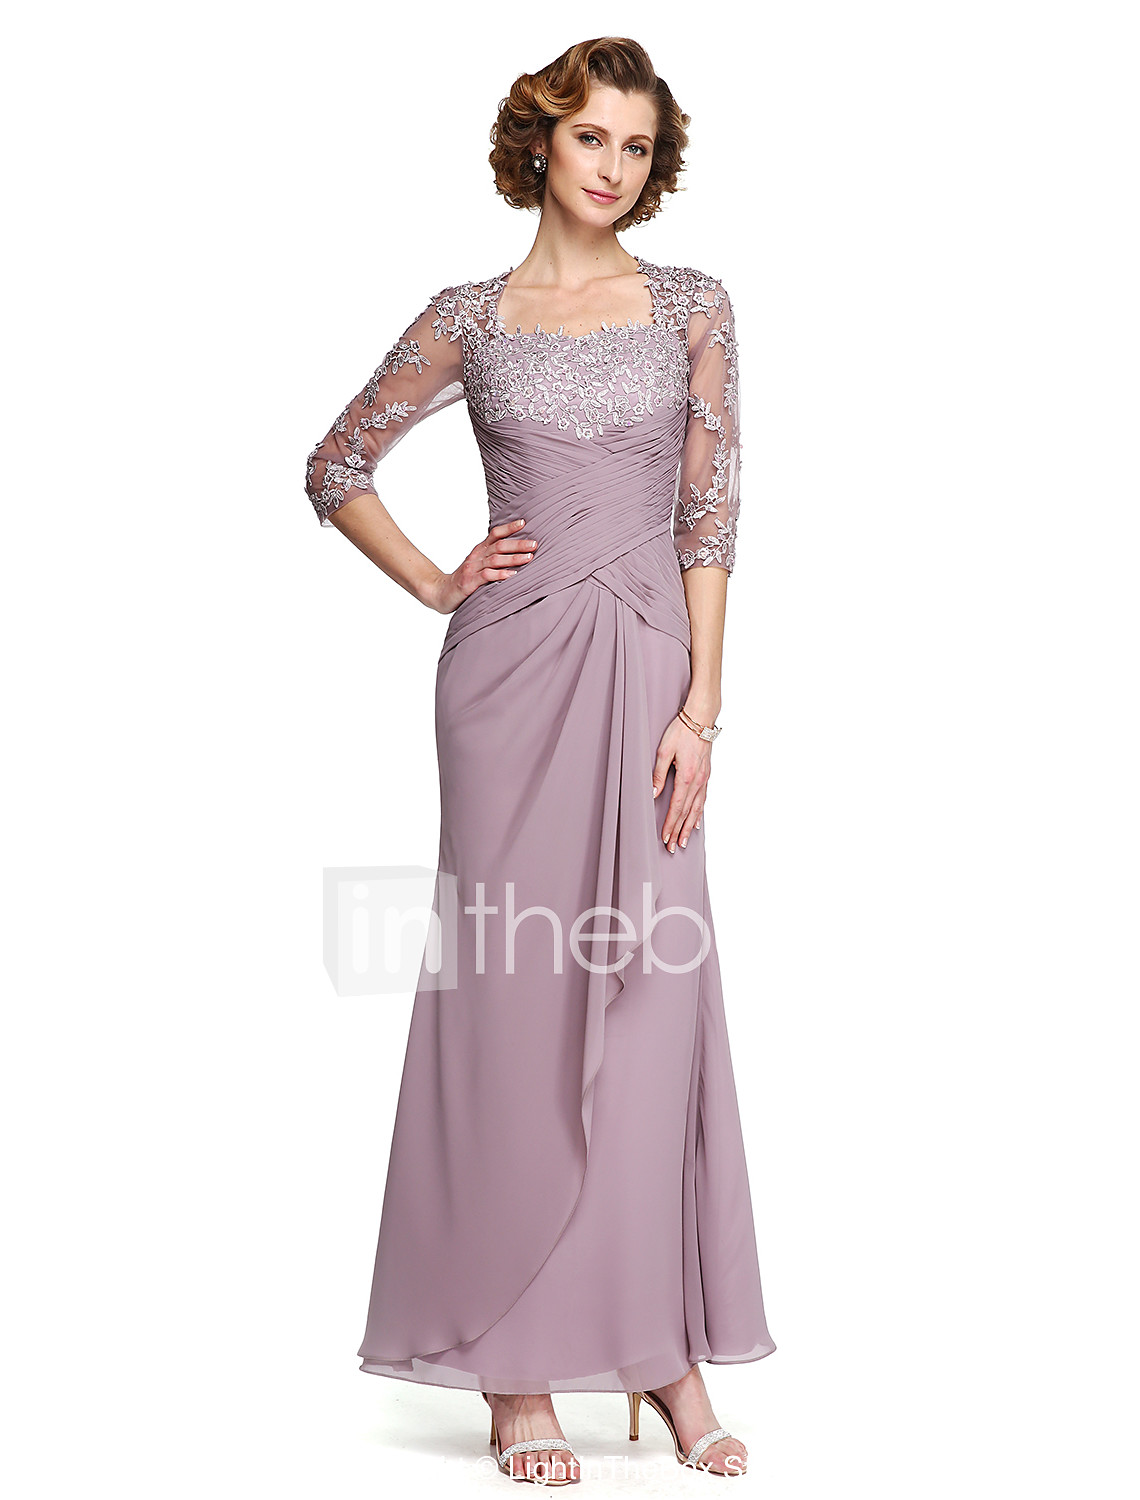 Cheap Mother of the Bride Dresses Online - Mother of the Bride ...